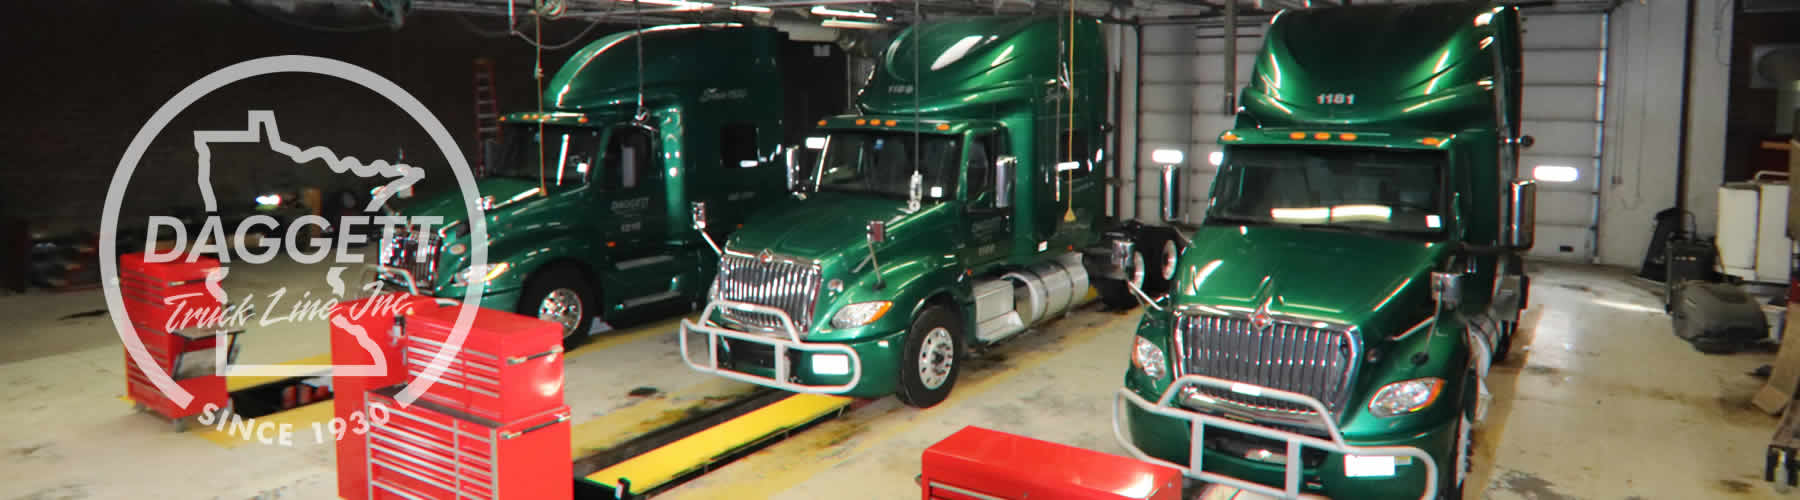 Contact Daggett Truck Line Inc. of Frazee and Clearwater, Minnesota.